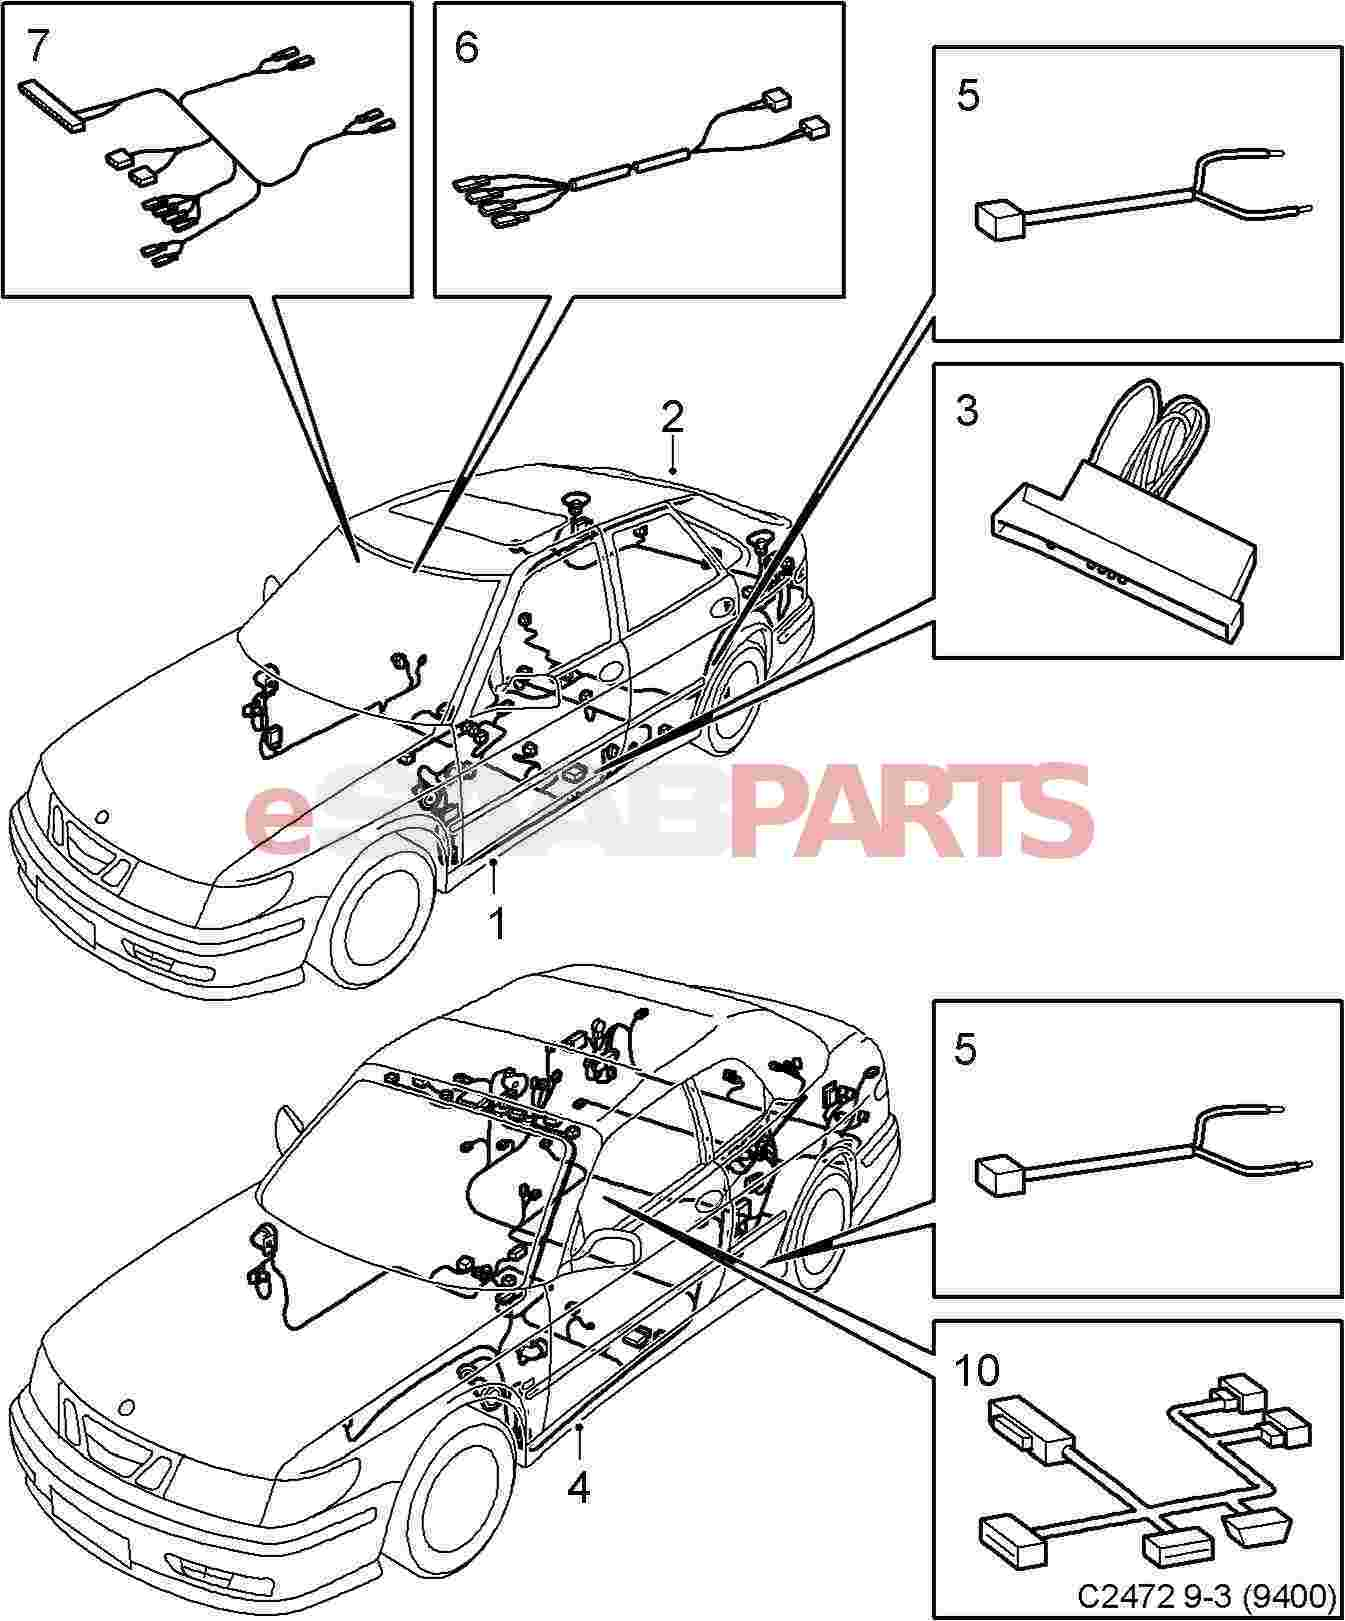 2003 Saab 9 3 Fuse Box as well 5262357 in addition Wiring Harness likewise Saab Antenna Parts Diagrams also 1997 Infiniti Qx4 Wiring Diagram And Electrical System Service And Troubleshooting. on 2003 saab 9 3 antenna